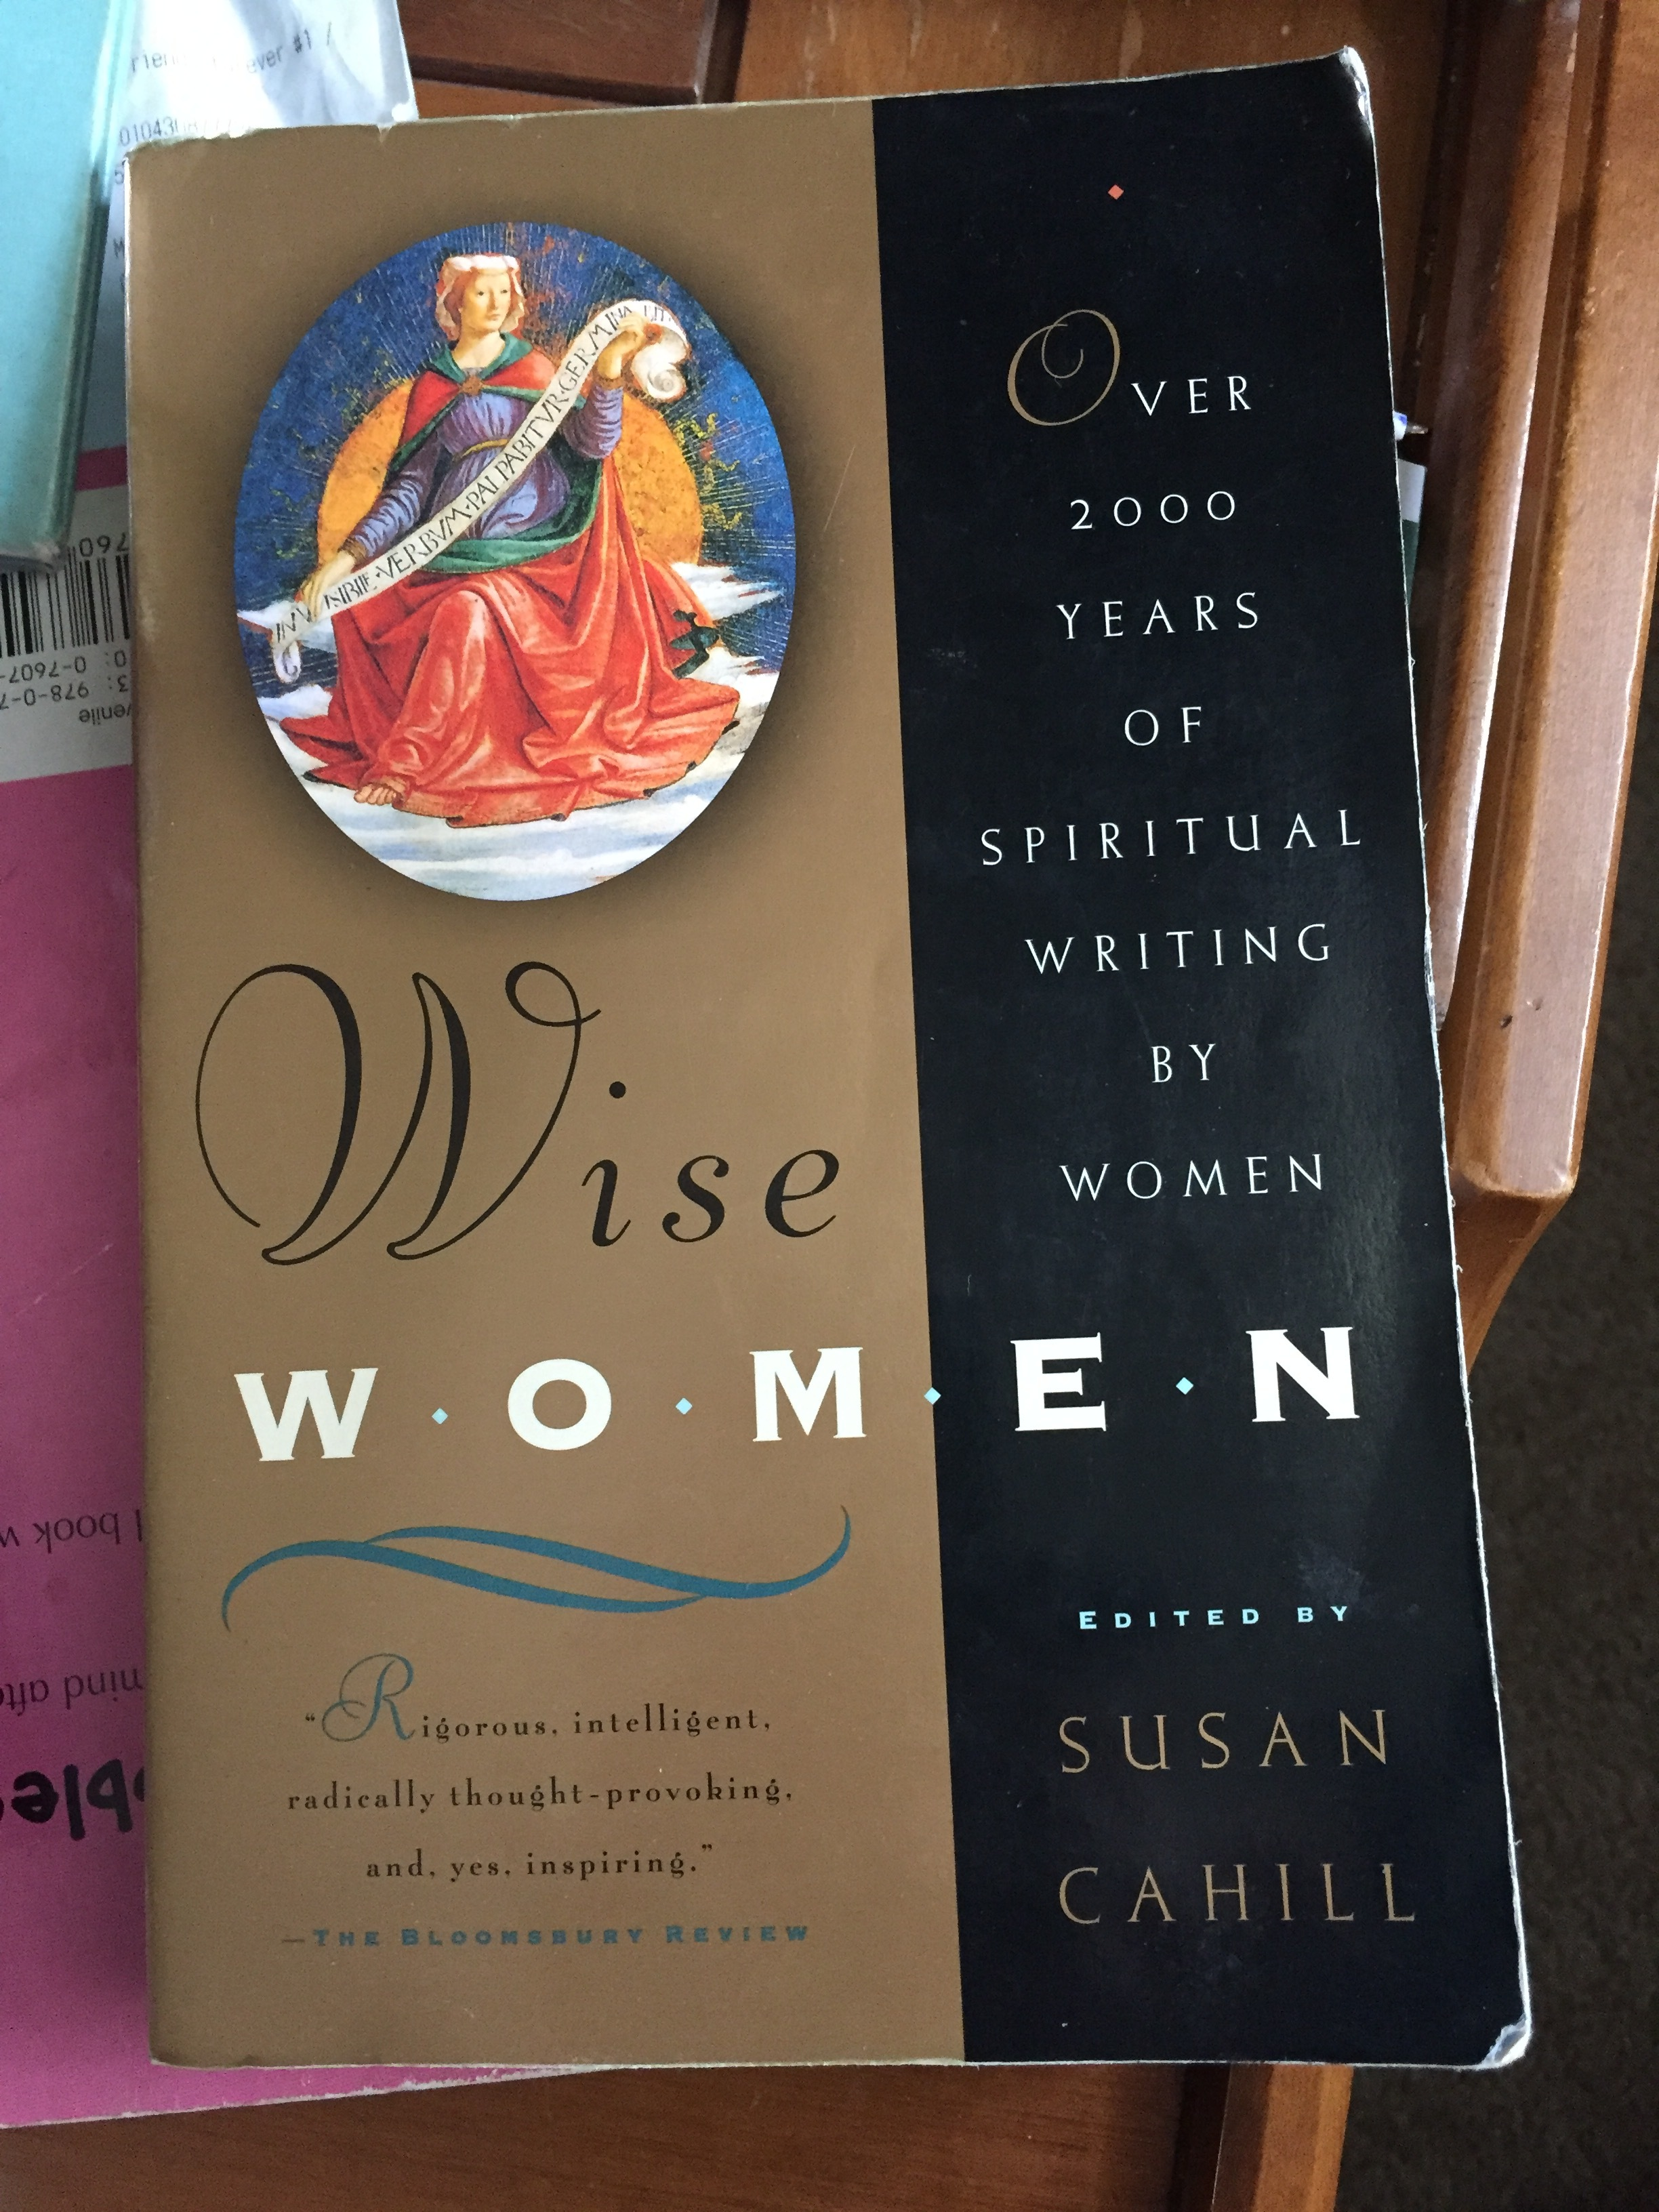 Some of the writing in this book is by Beguine women.